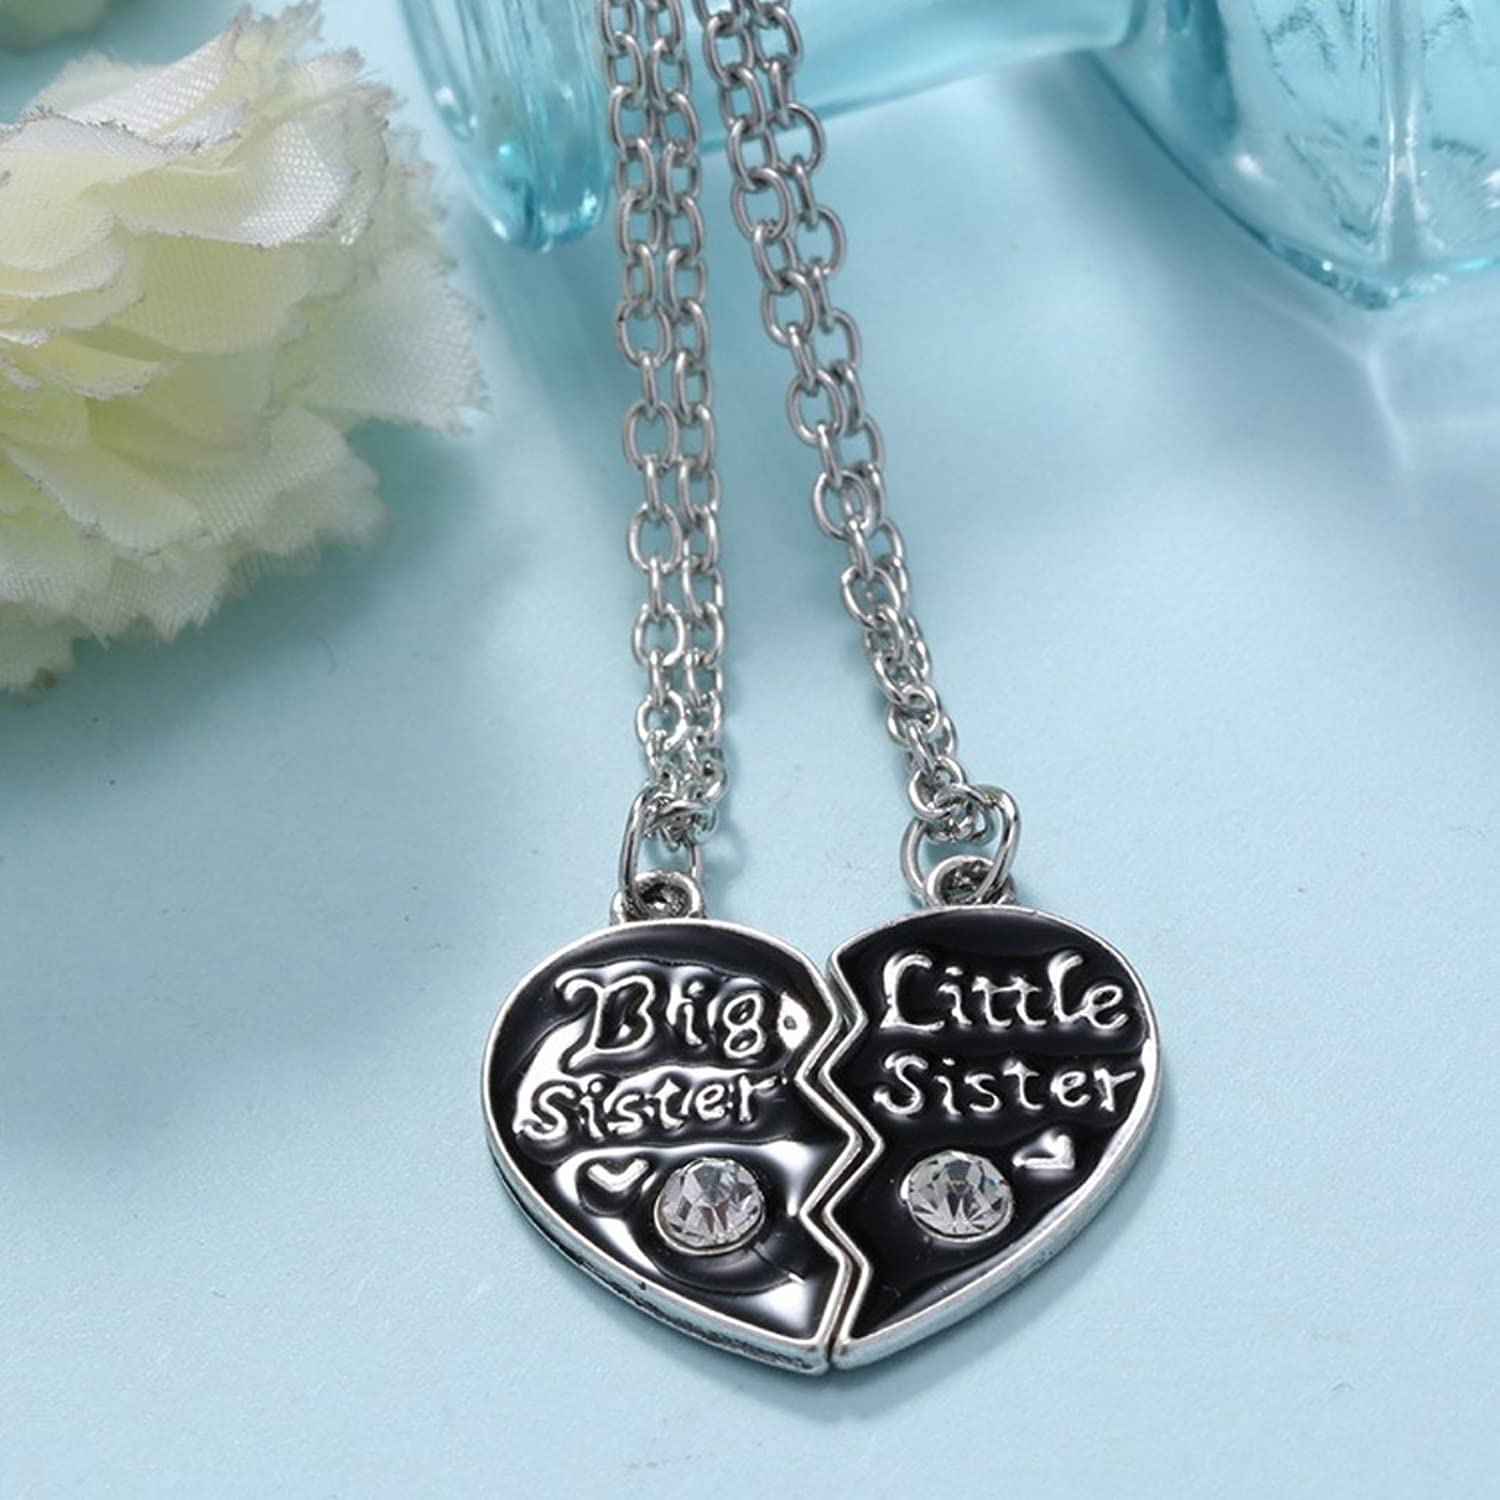 Buy generic sisters love combine heart pendant necklace chain buy generic sisters love combine heart pendant necklace chain silver black jewel for women online at low prices in india amazon jewellery store amazon mozeypictures Image collections